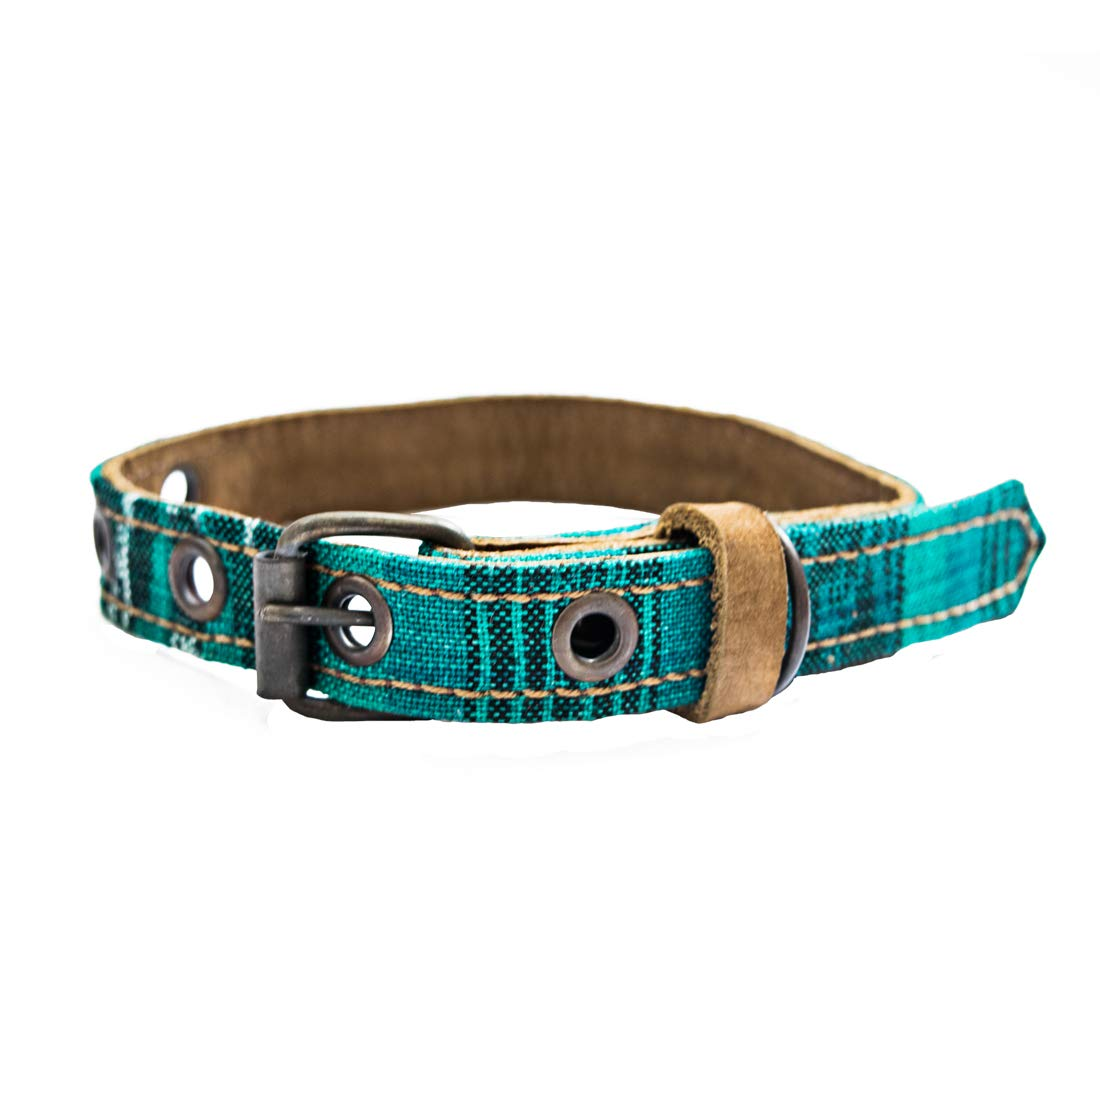 Mayan Pet Collar For Small Size Cats & Dogs (5.75 - 9.75 Inches) Handmade by Hide & Drink :: Tropical Lime by Hide & Drink